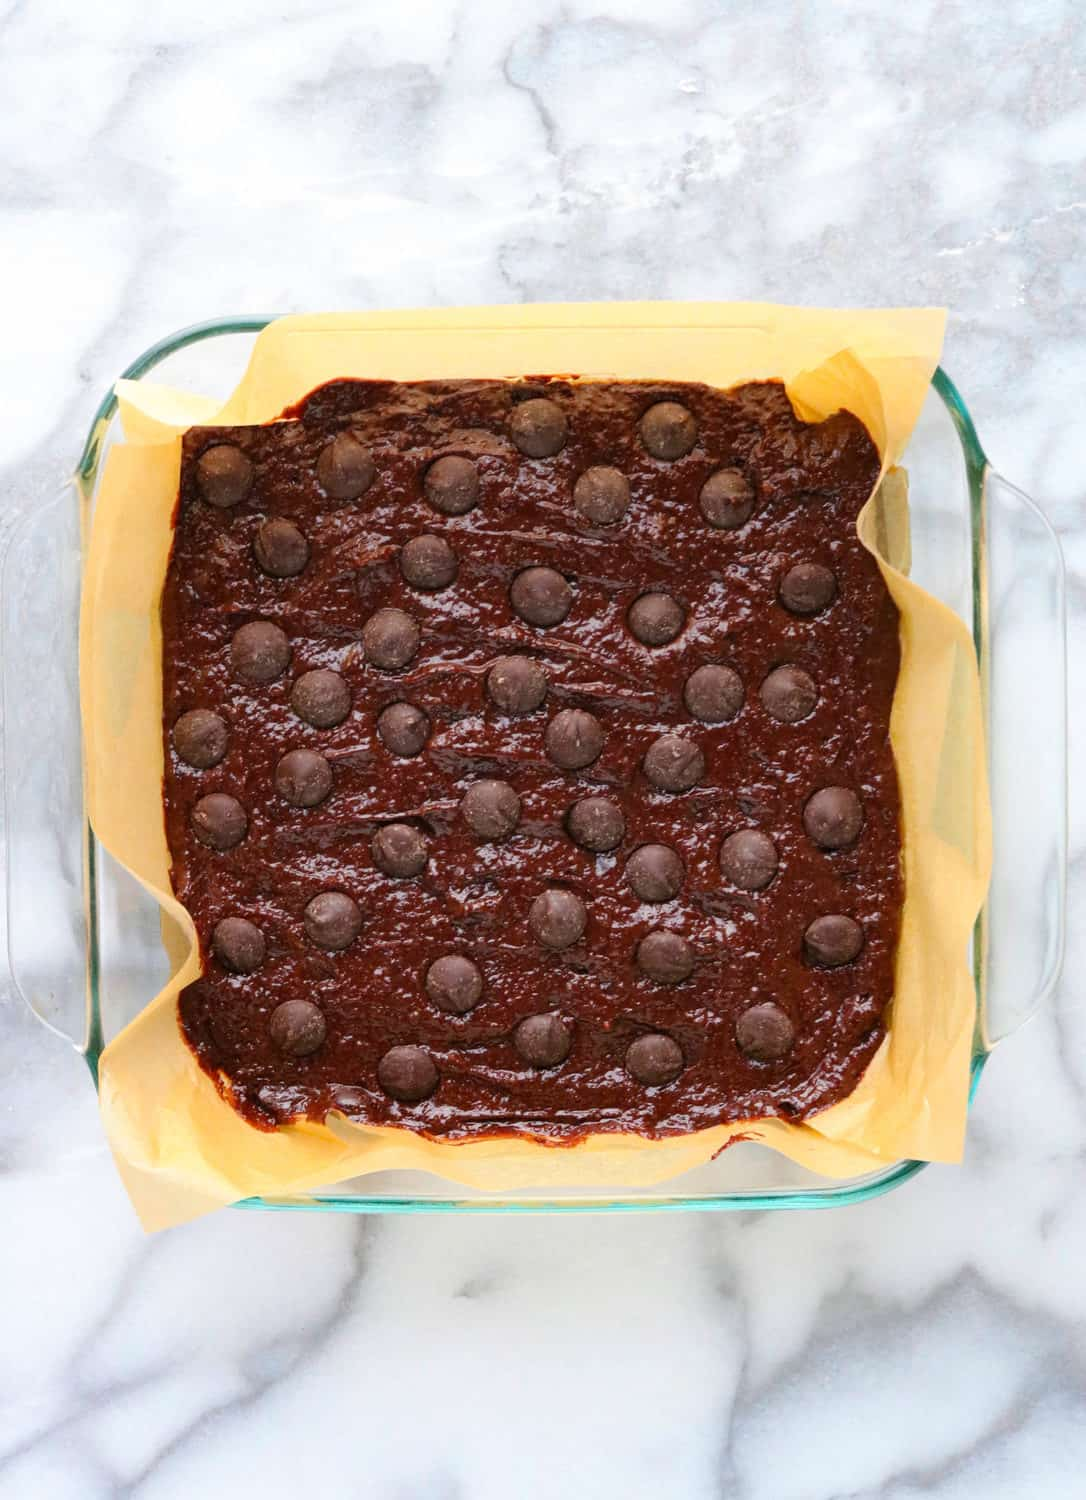 brownie batter in a glass dish topped with chocolate chips